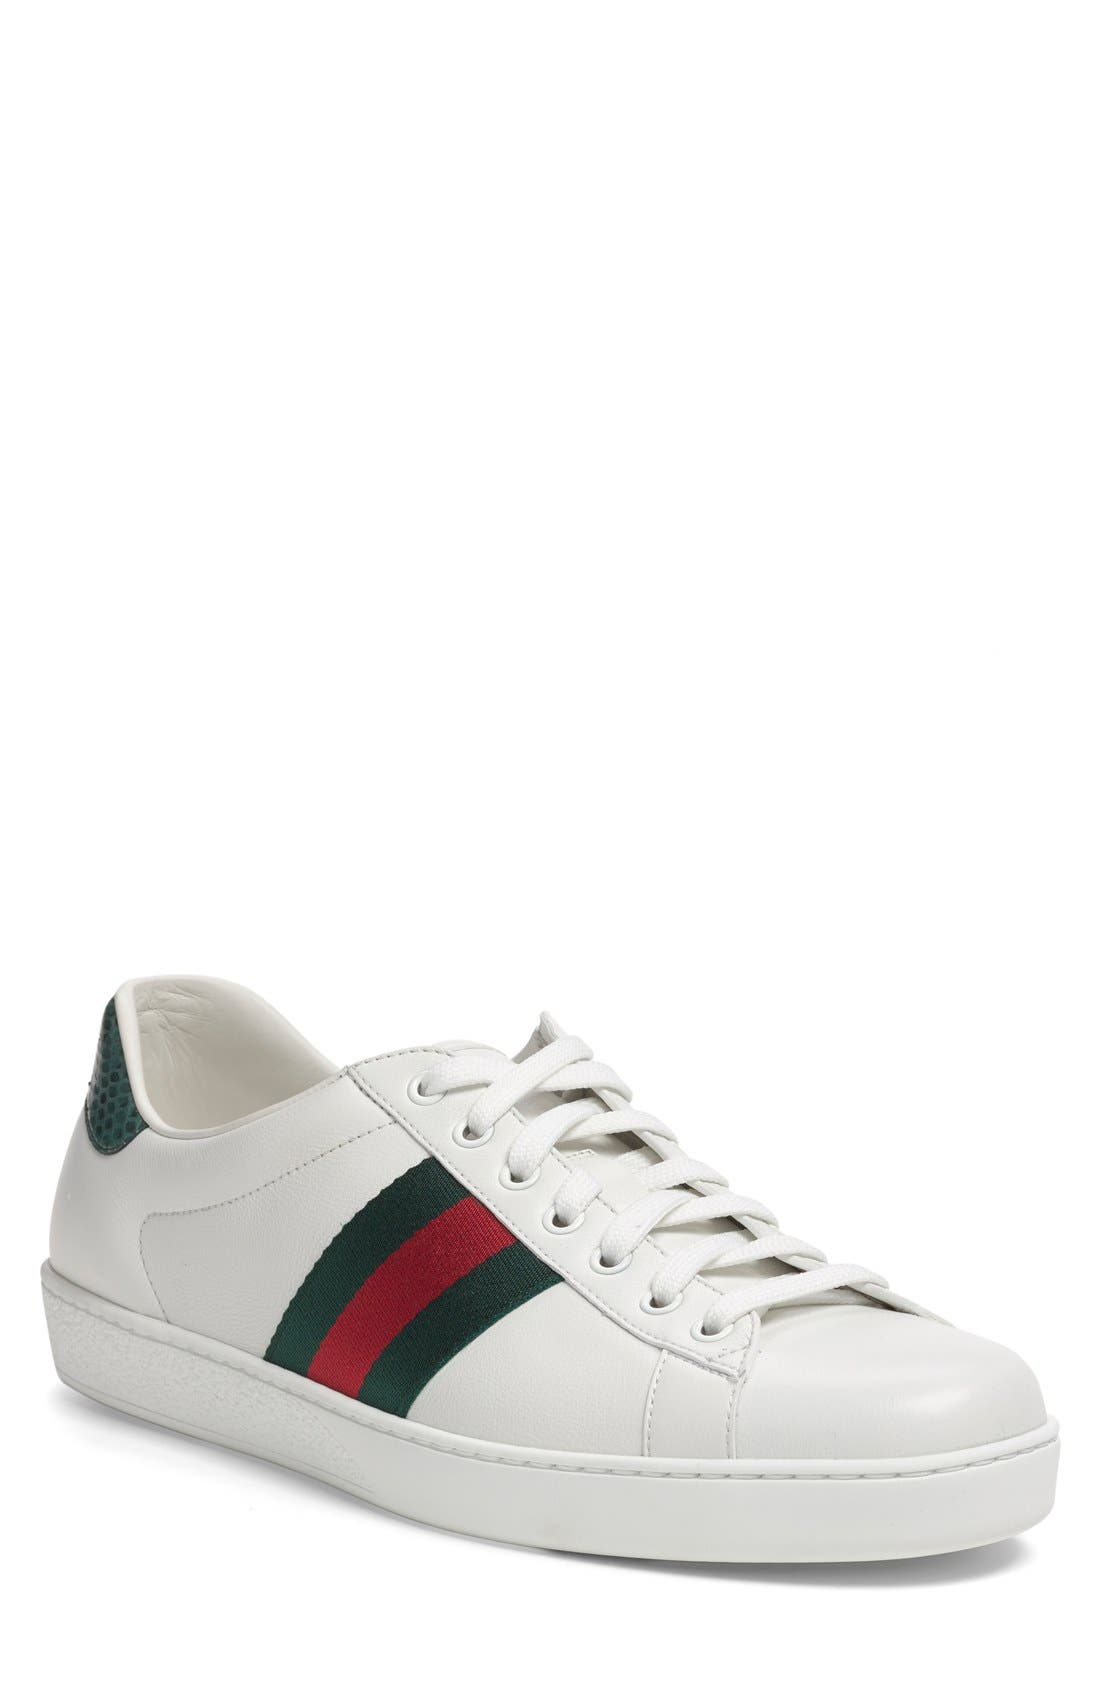 Alternate Image 1 Selected - Gucci New Ace Sneaker (Men)